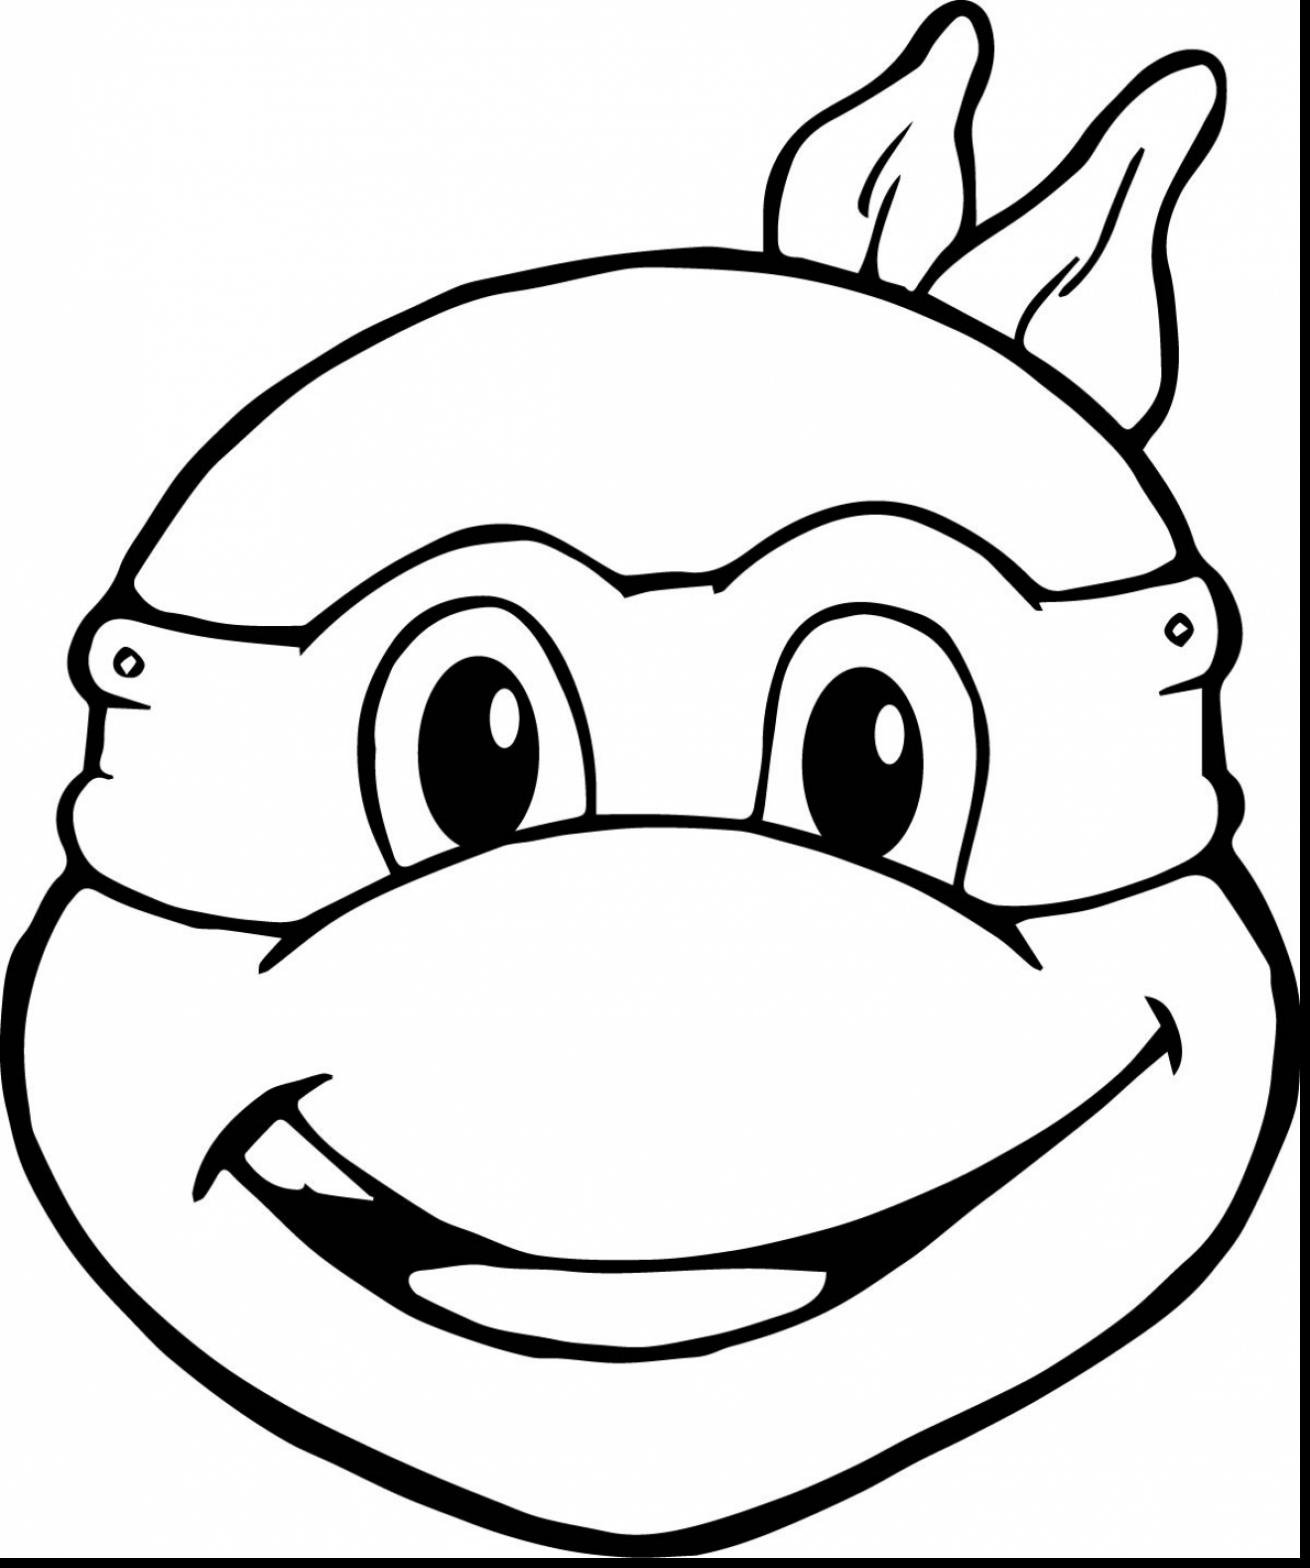 ninja turtle printable coloring pages ninja turtles coloring pages free download on clipartmag coloring pages printable ninja turtle